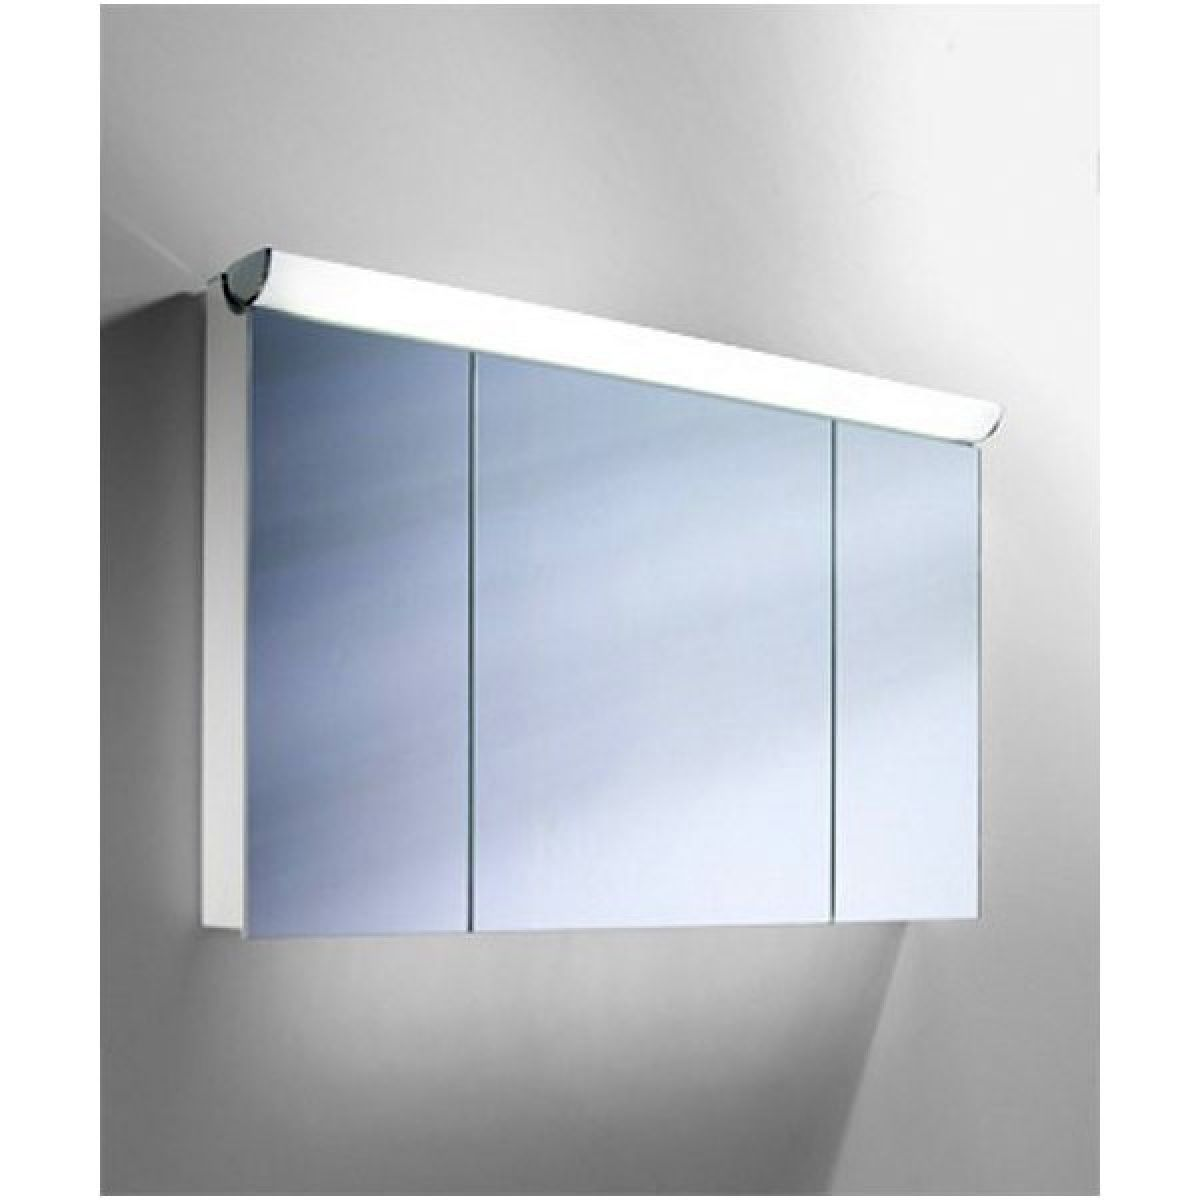 illuminated mirrored bathroom cabinets schneider faceline 3 door illuminated mirror cabinet 17778